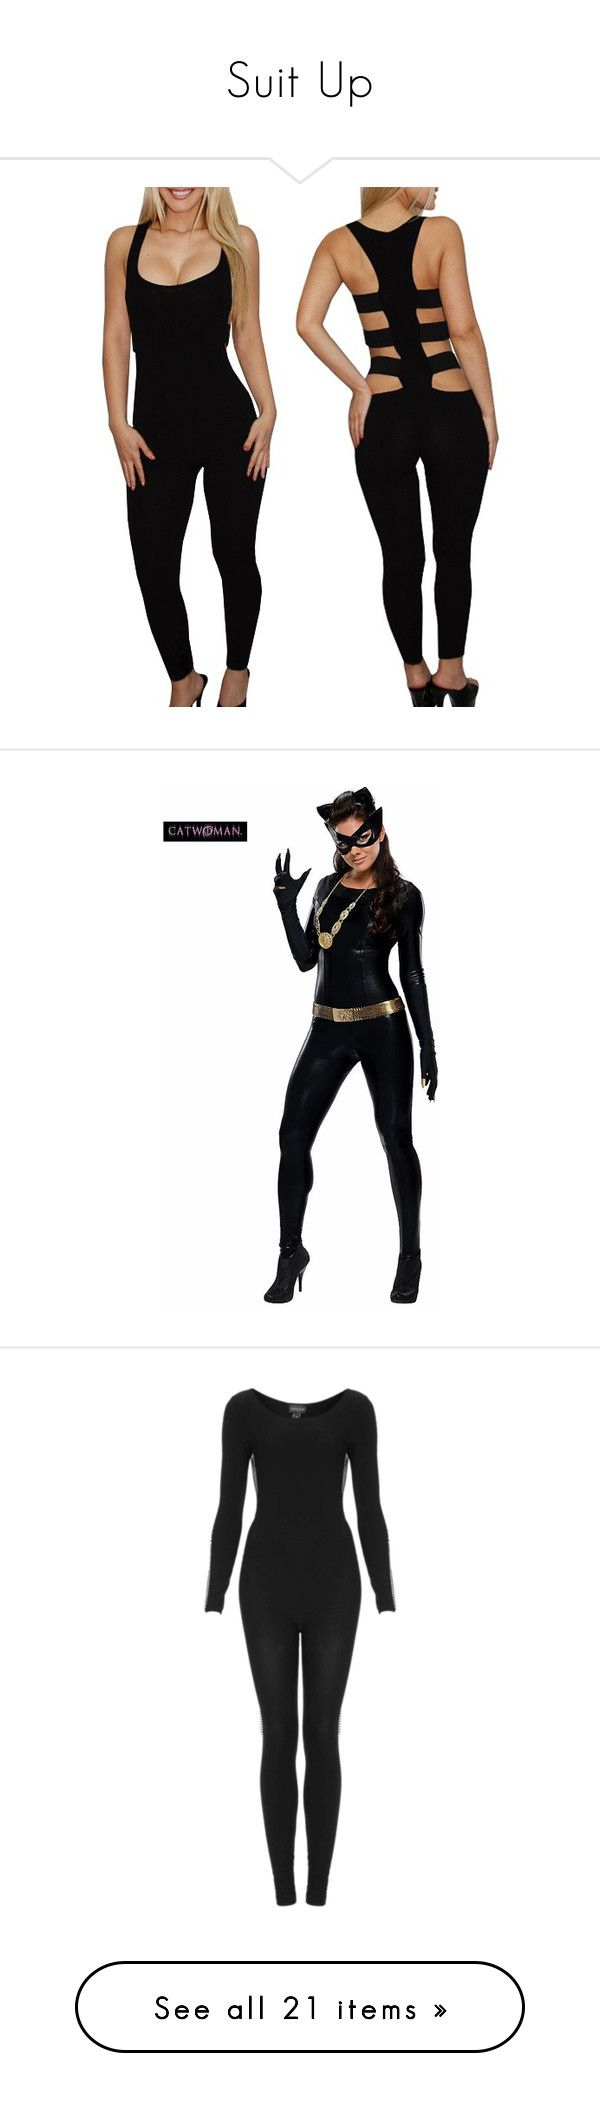 """""""Suit Up"""" by the-walking-dez ❤ liked on Polyvore featuring jumpsuits, costumes, halloween costumes, multicolor, catwoman halloween costume, adult costumes, white costume, white halloween costumes, adult halloween costumes and intimates"""